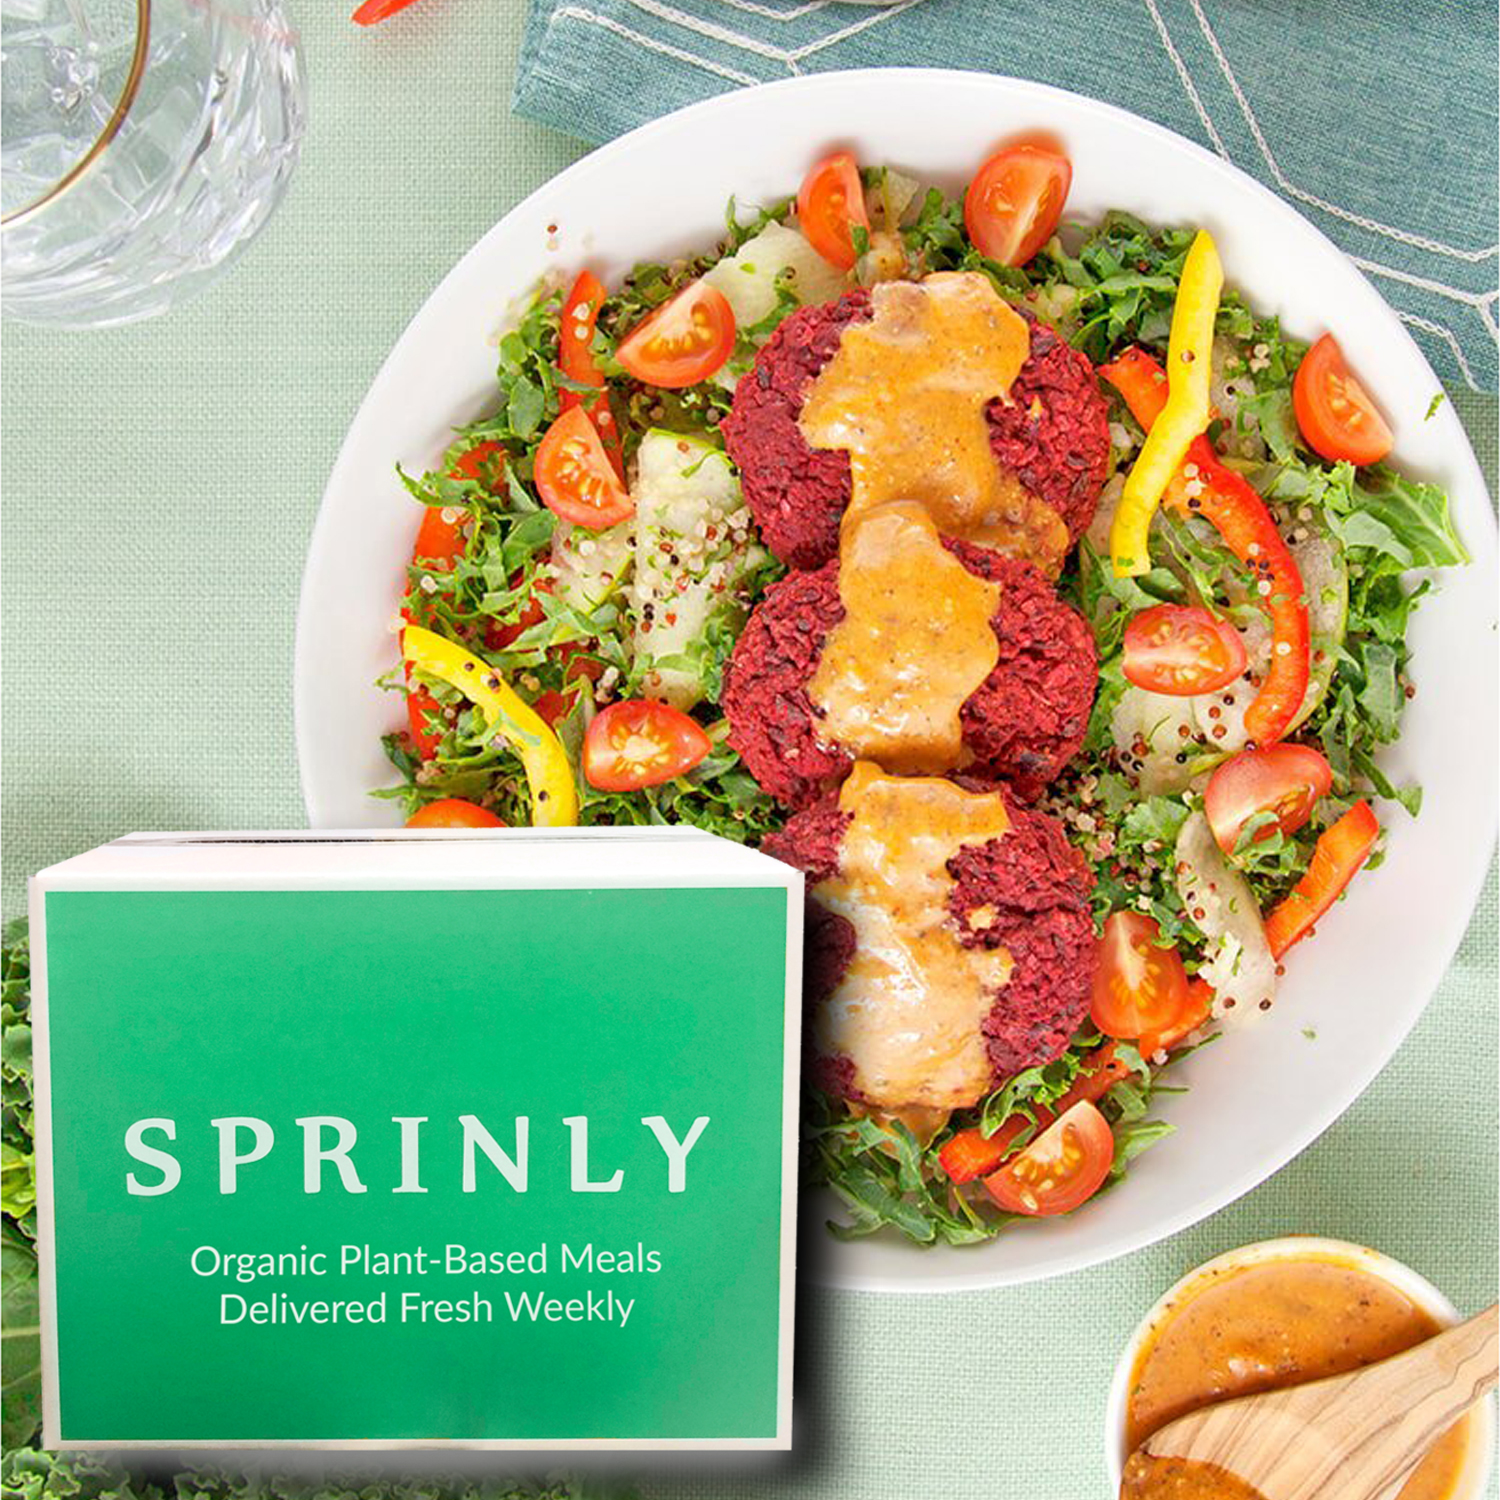 Sprinly organic plant-based meal delivery